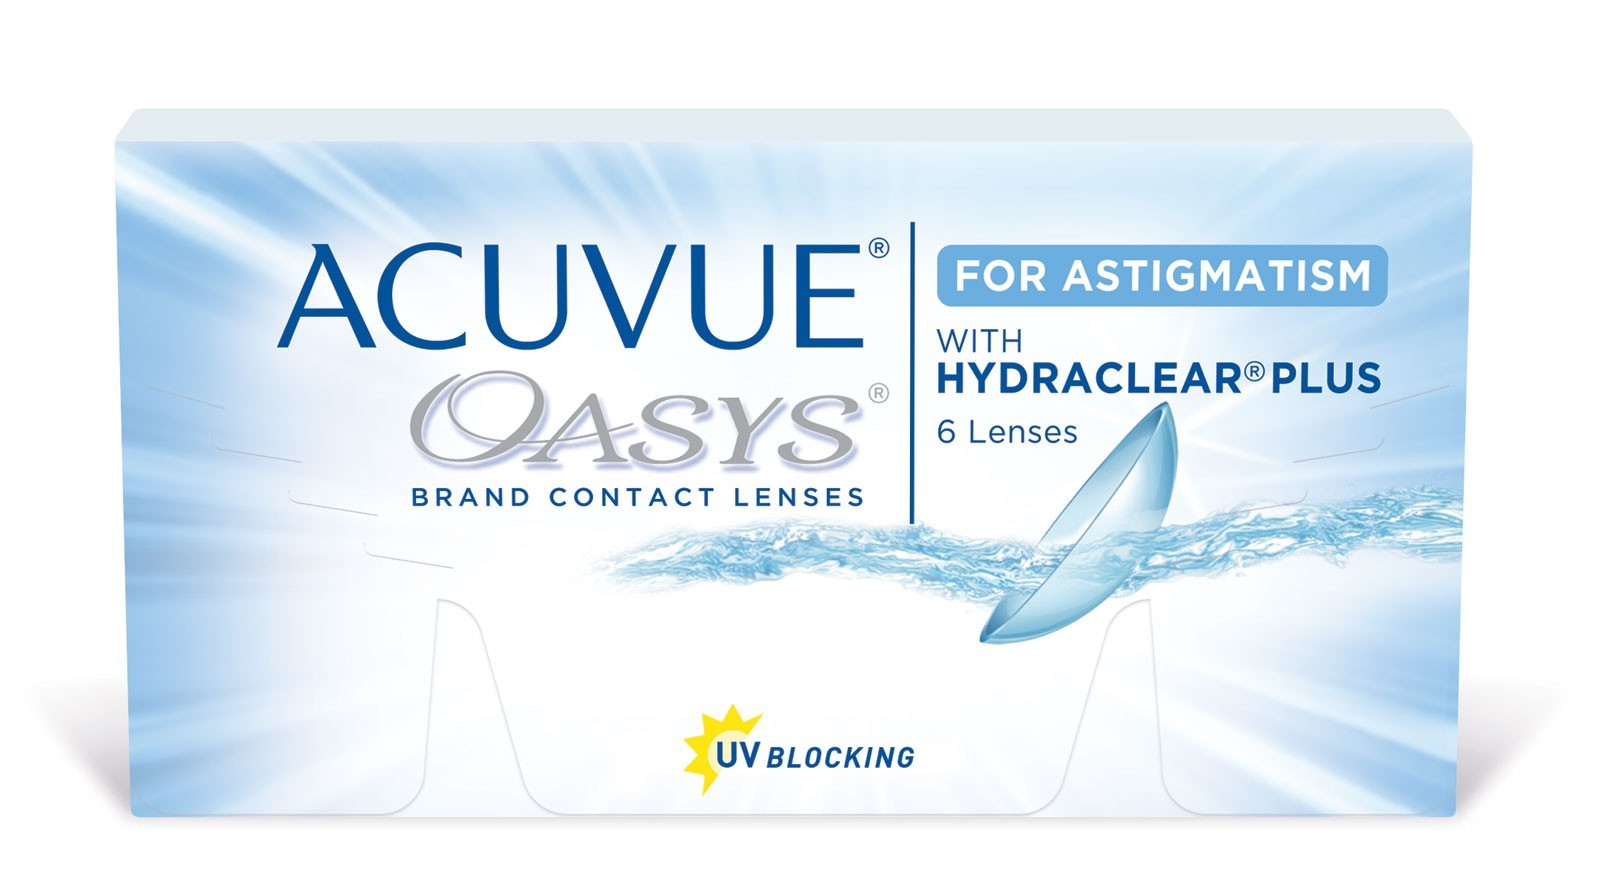 Acuvue Oasys Contacts >> Buy Acuvue Oasys for Astigmatism Online | Lens4Vision.com Canada based